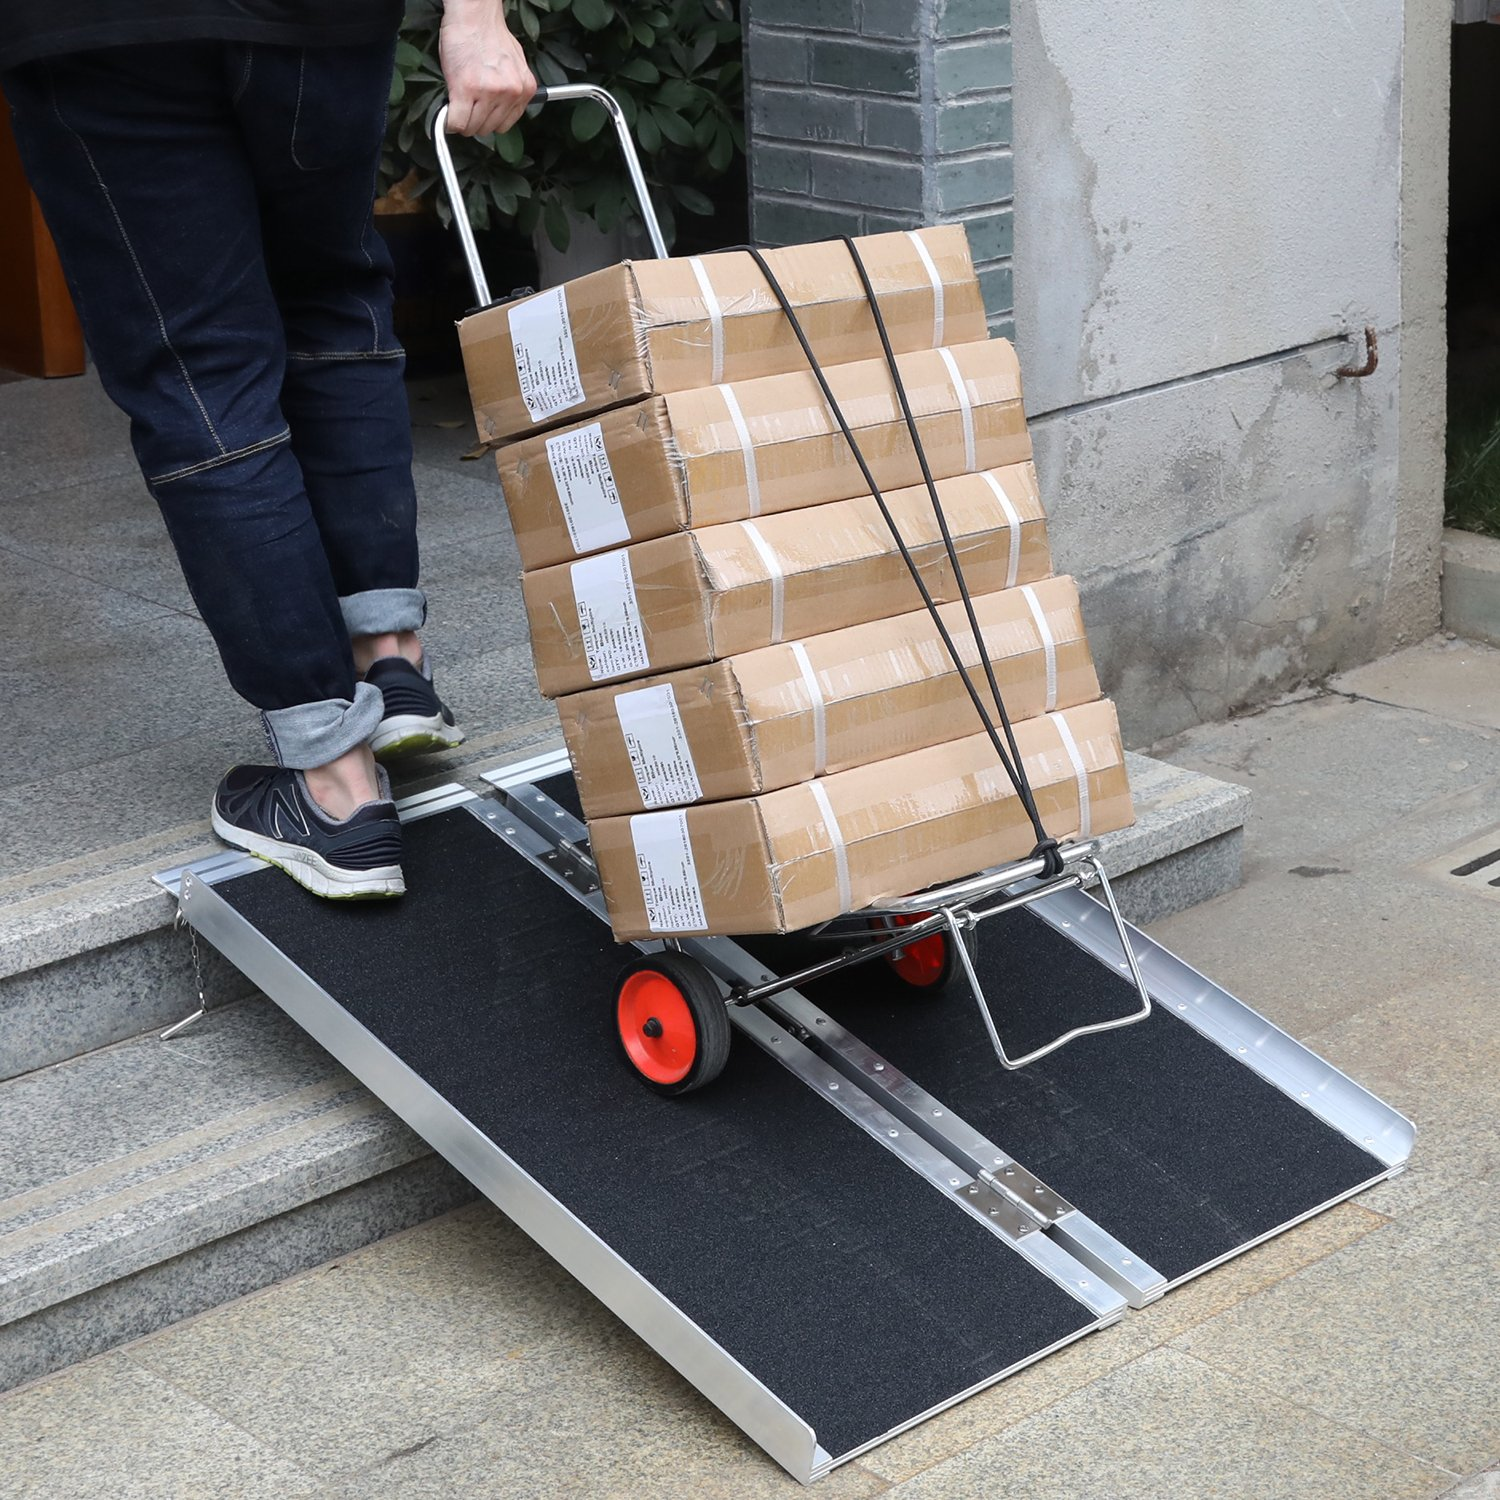 Portable Aluminum Wheelchair Ramp Foldable Separated Mobility Scooter Traction Ramp with Carrying Handle 3 Feet by Hromee (Image #4)